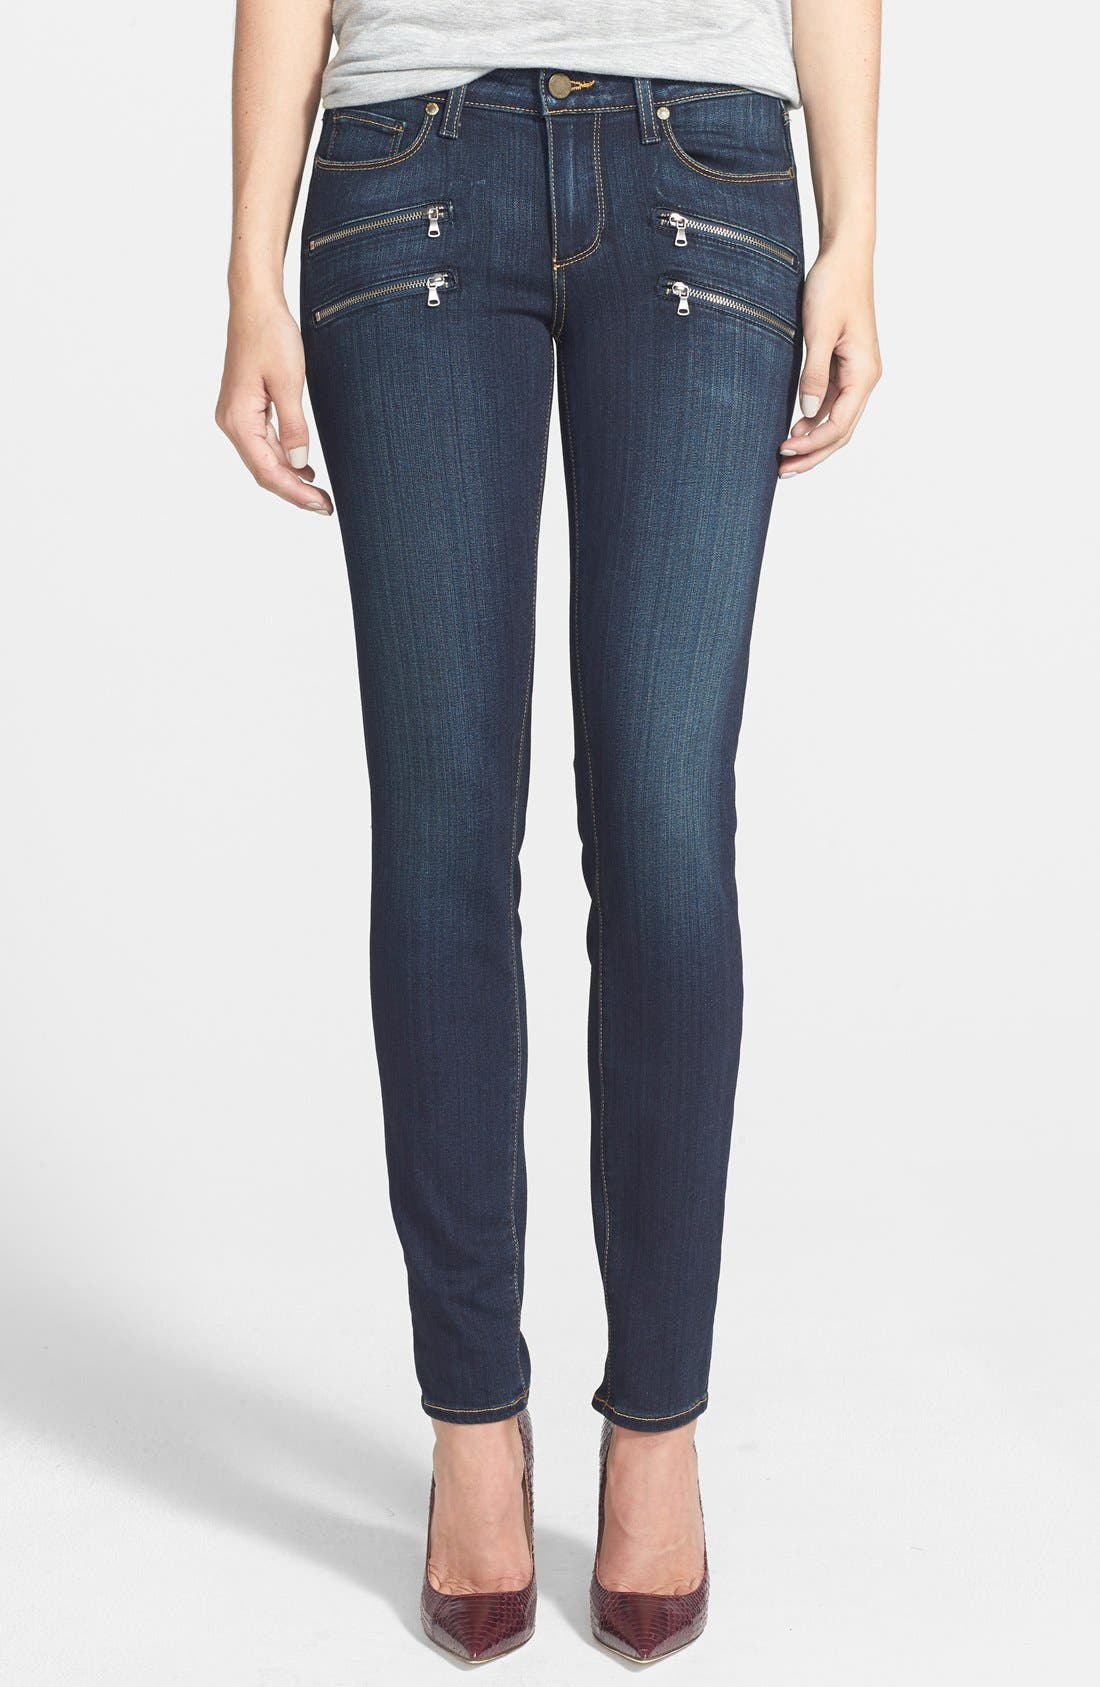 Alternate Image 1 Selected - Paige Denim 'Edgemont' Ultra Skinny Jeans (Armstrong No Whiskers)